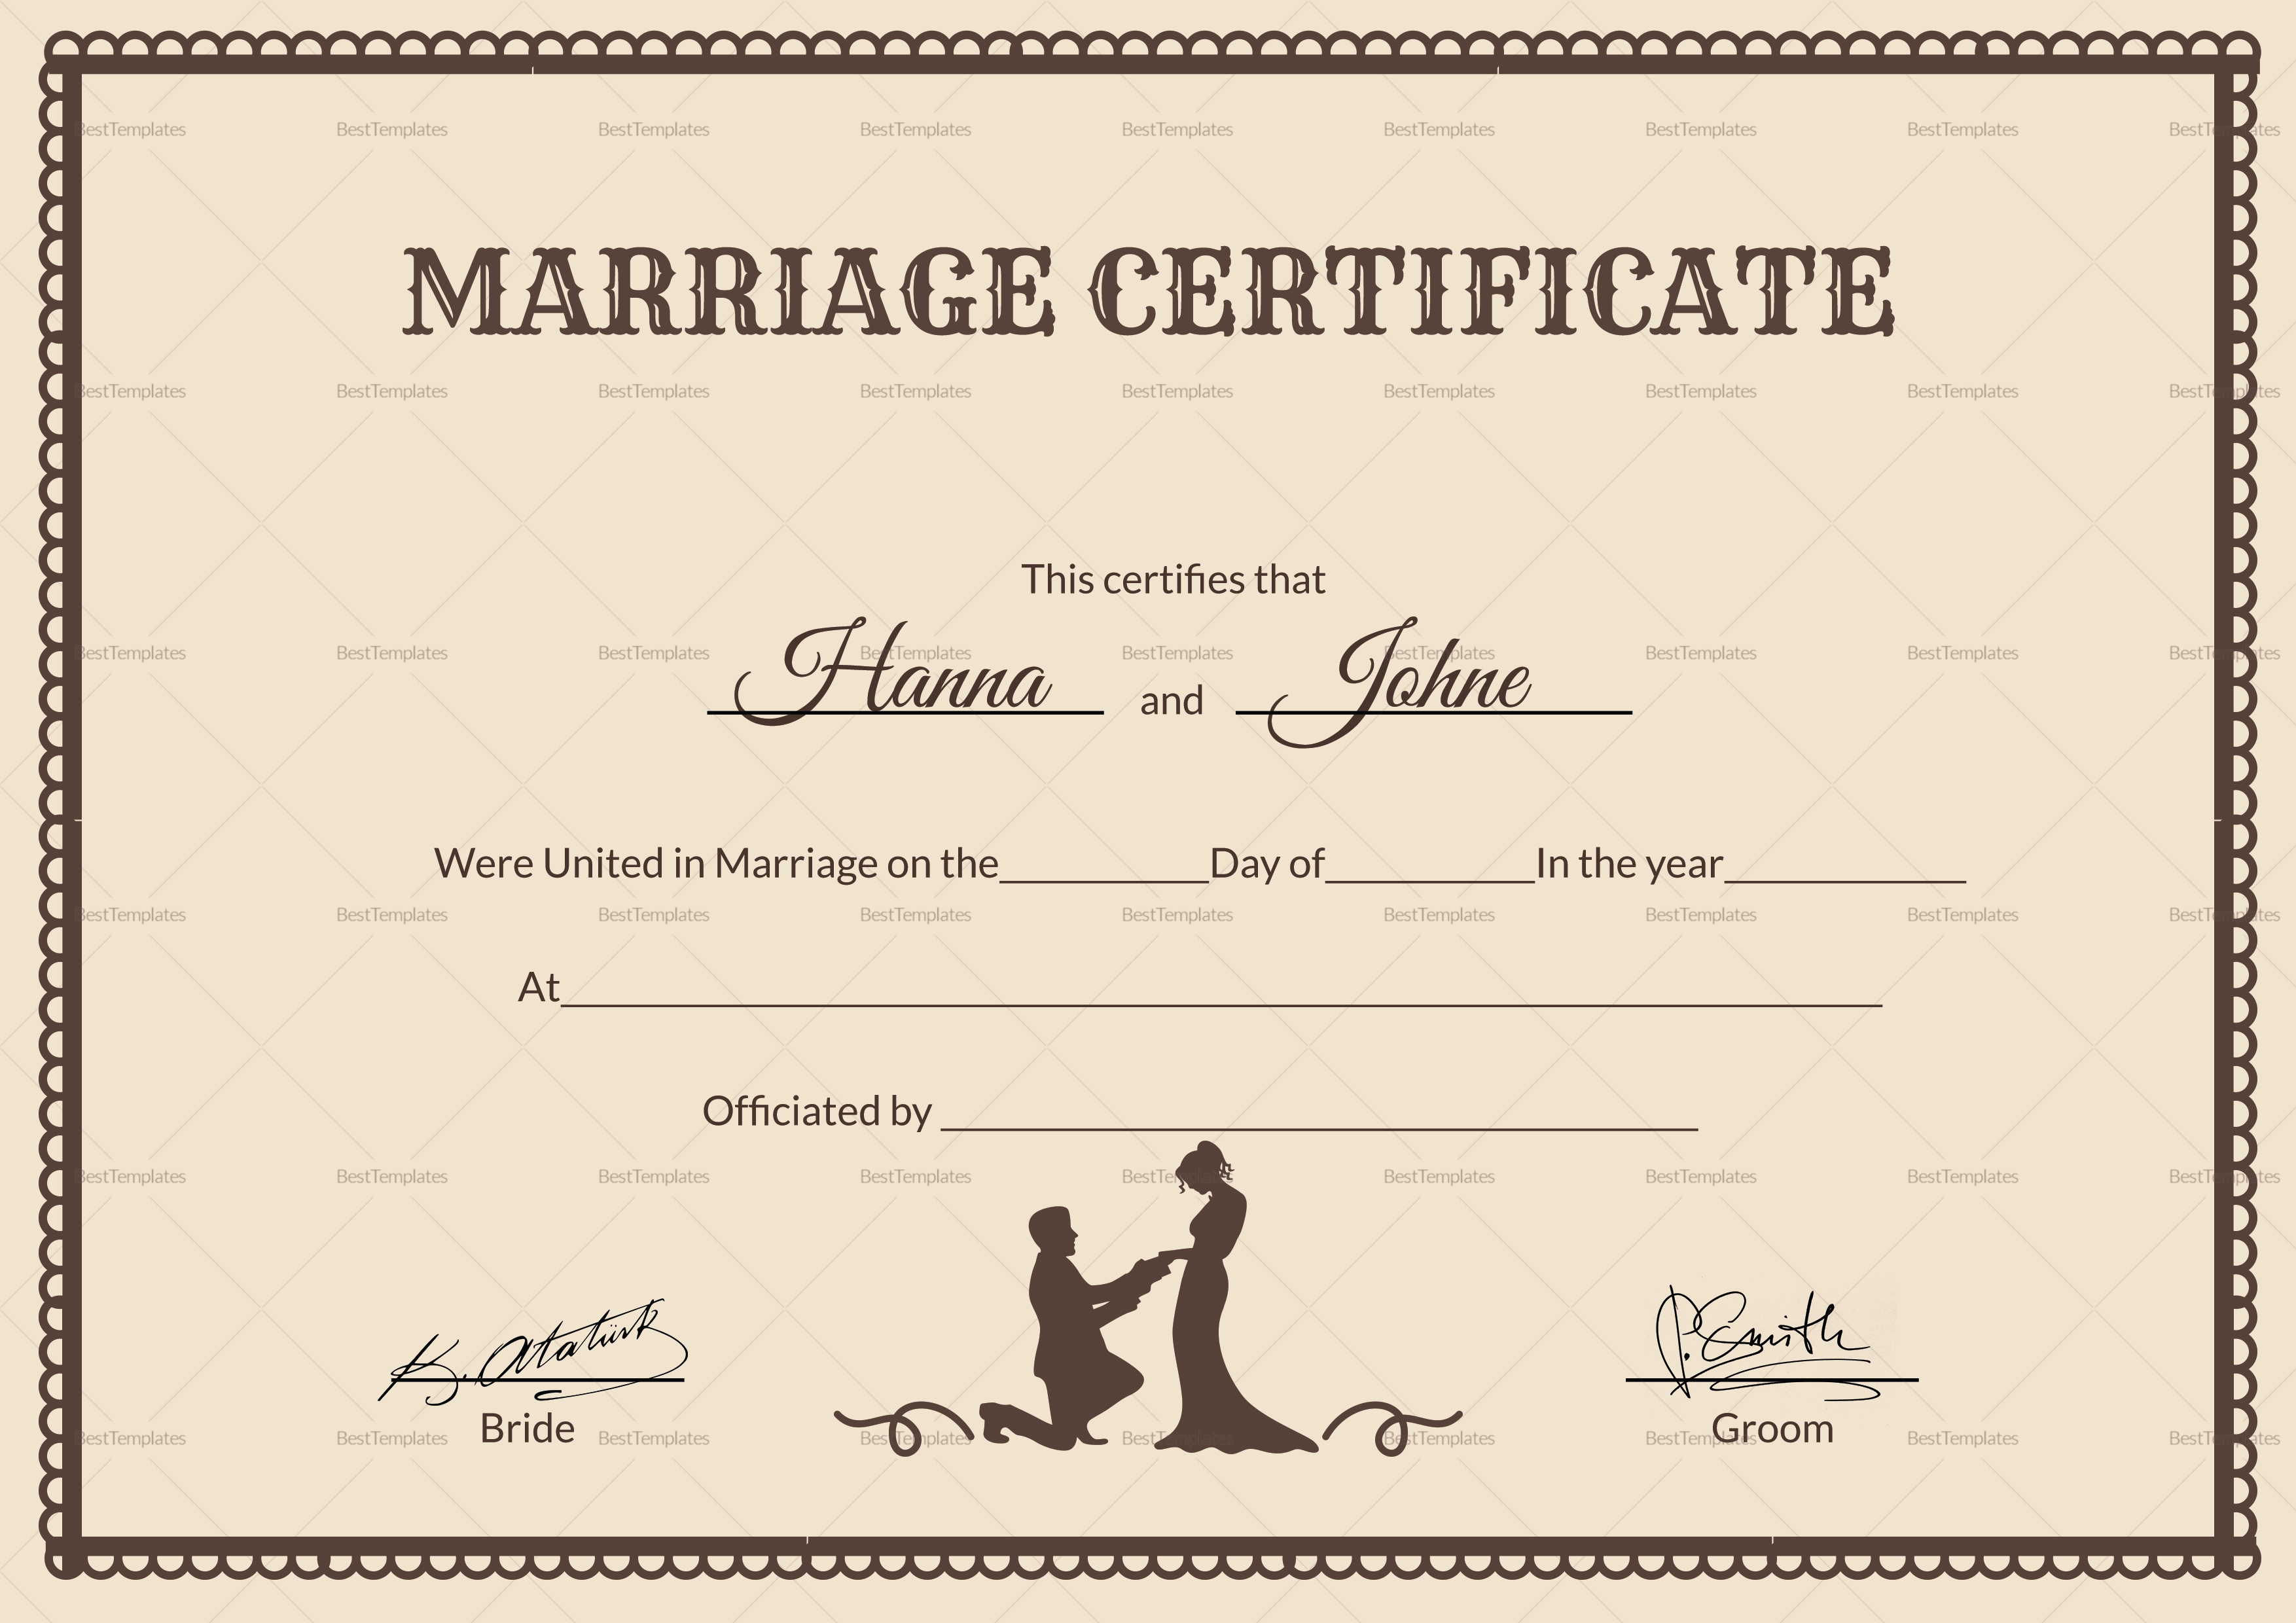 Vintage Marriage Certificate Design Template